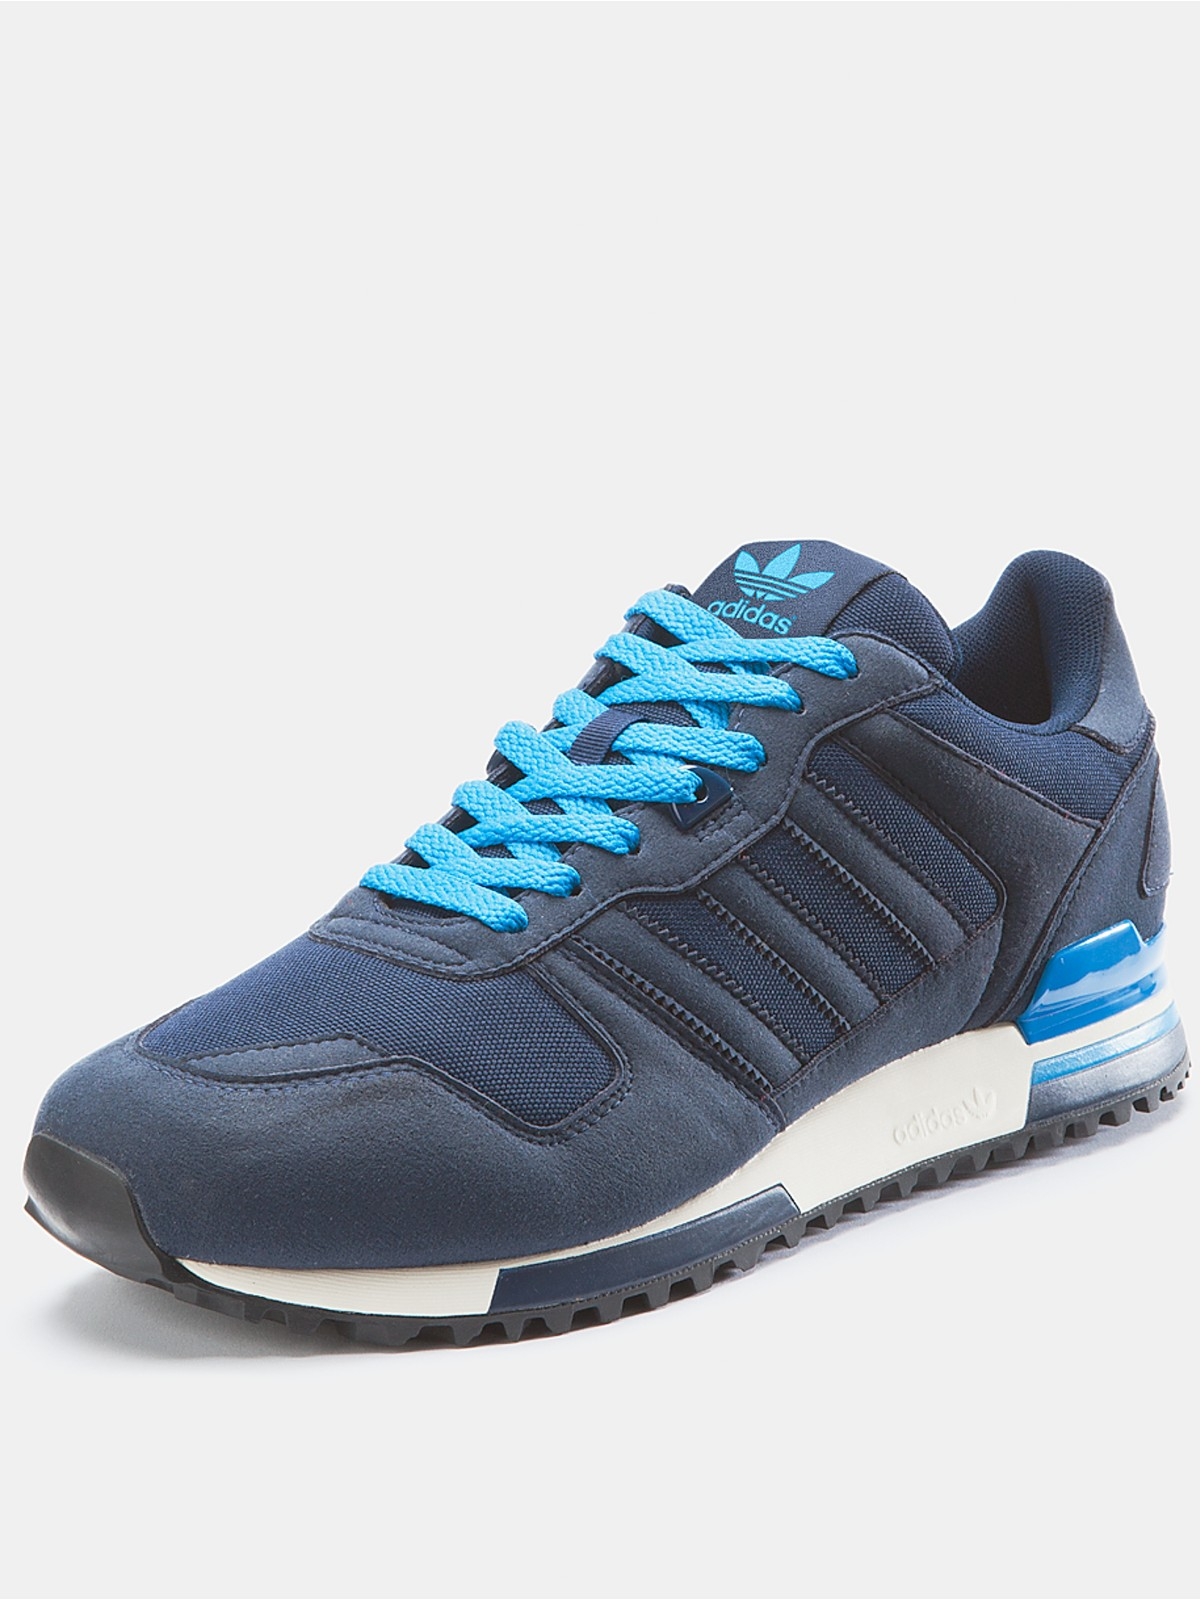 adidas adidas originals zx 700 mens suede trainers in blue. Black Bedroom Furniture Sets. Home Design Ideas